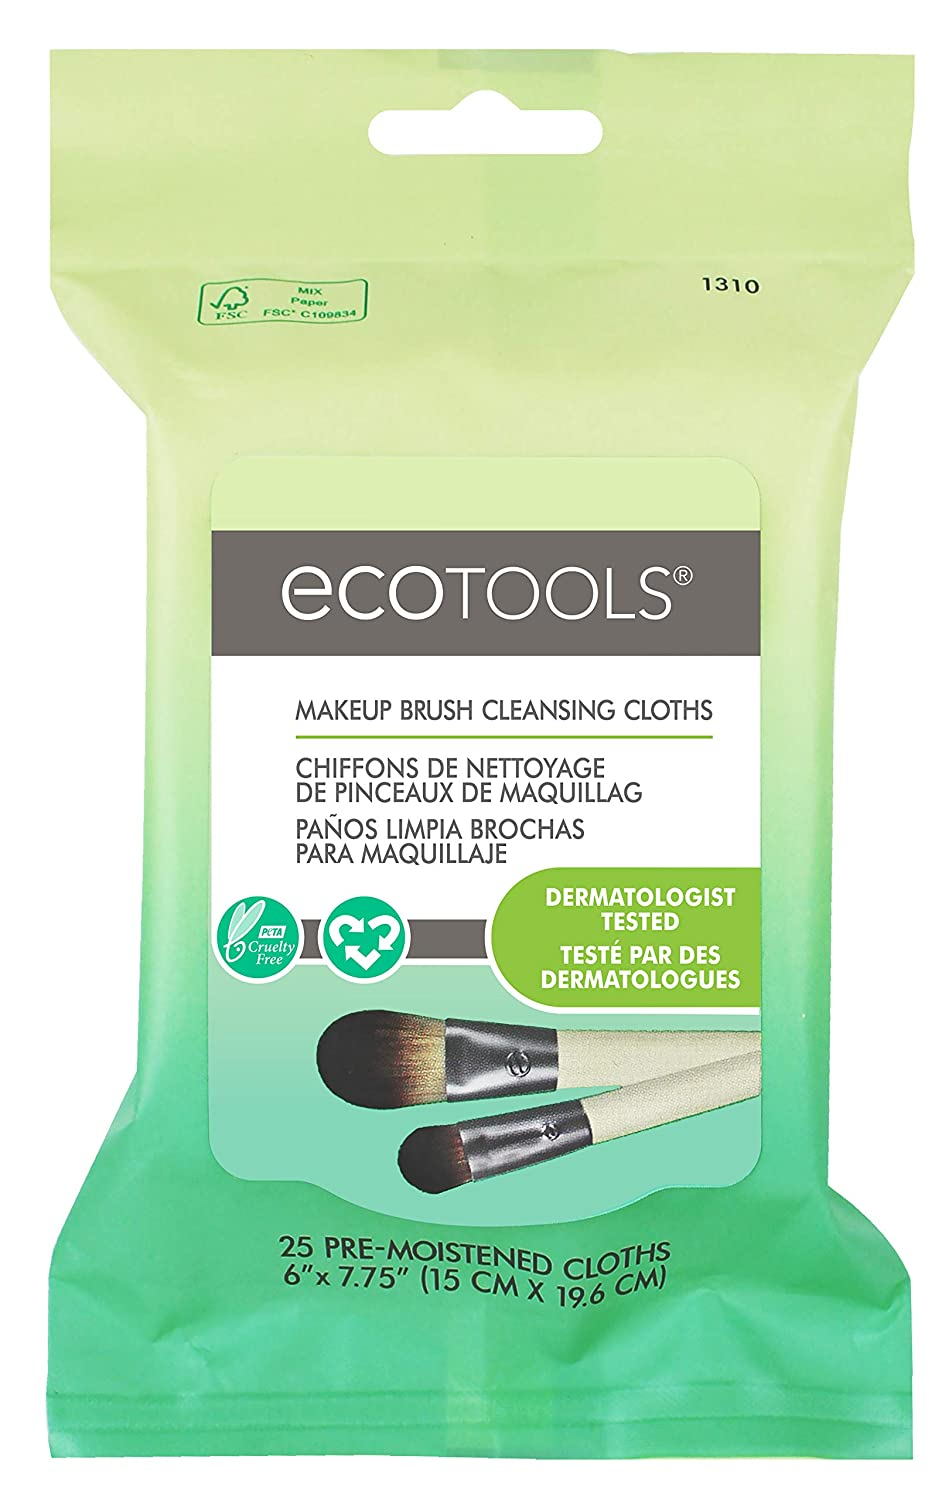 EcoTools Make-up Brush Cleansing wipes Paris Presents 1310